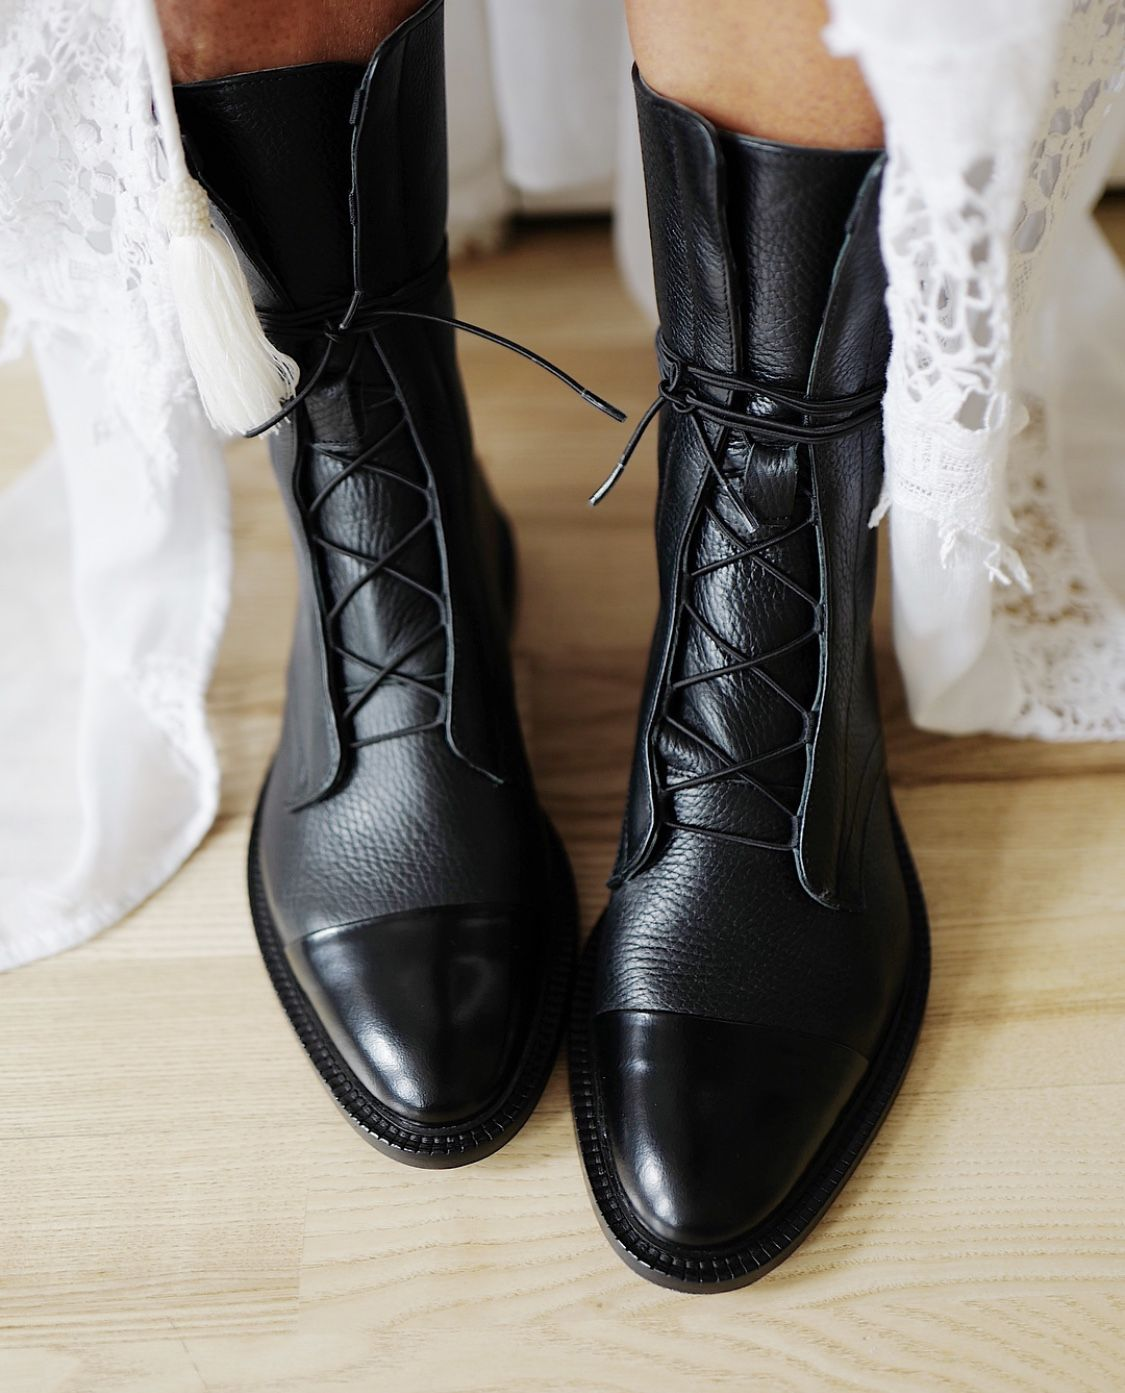 Leather Brogue Boots – INCH2 #shoeboots